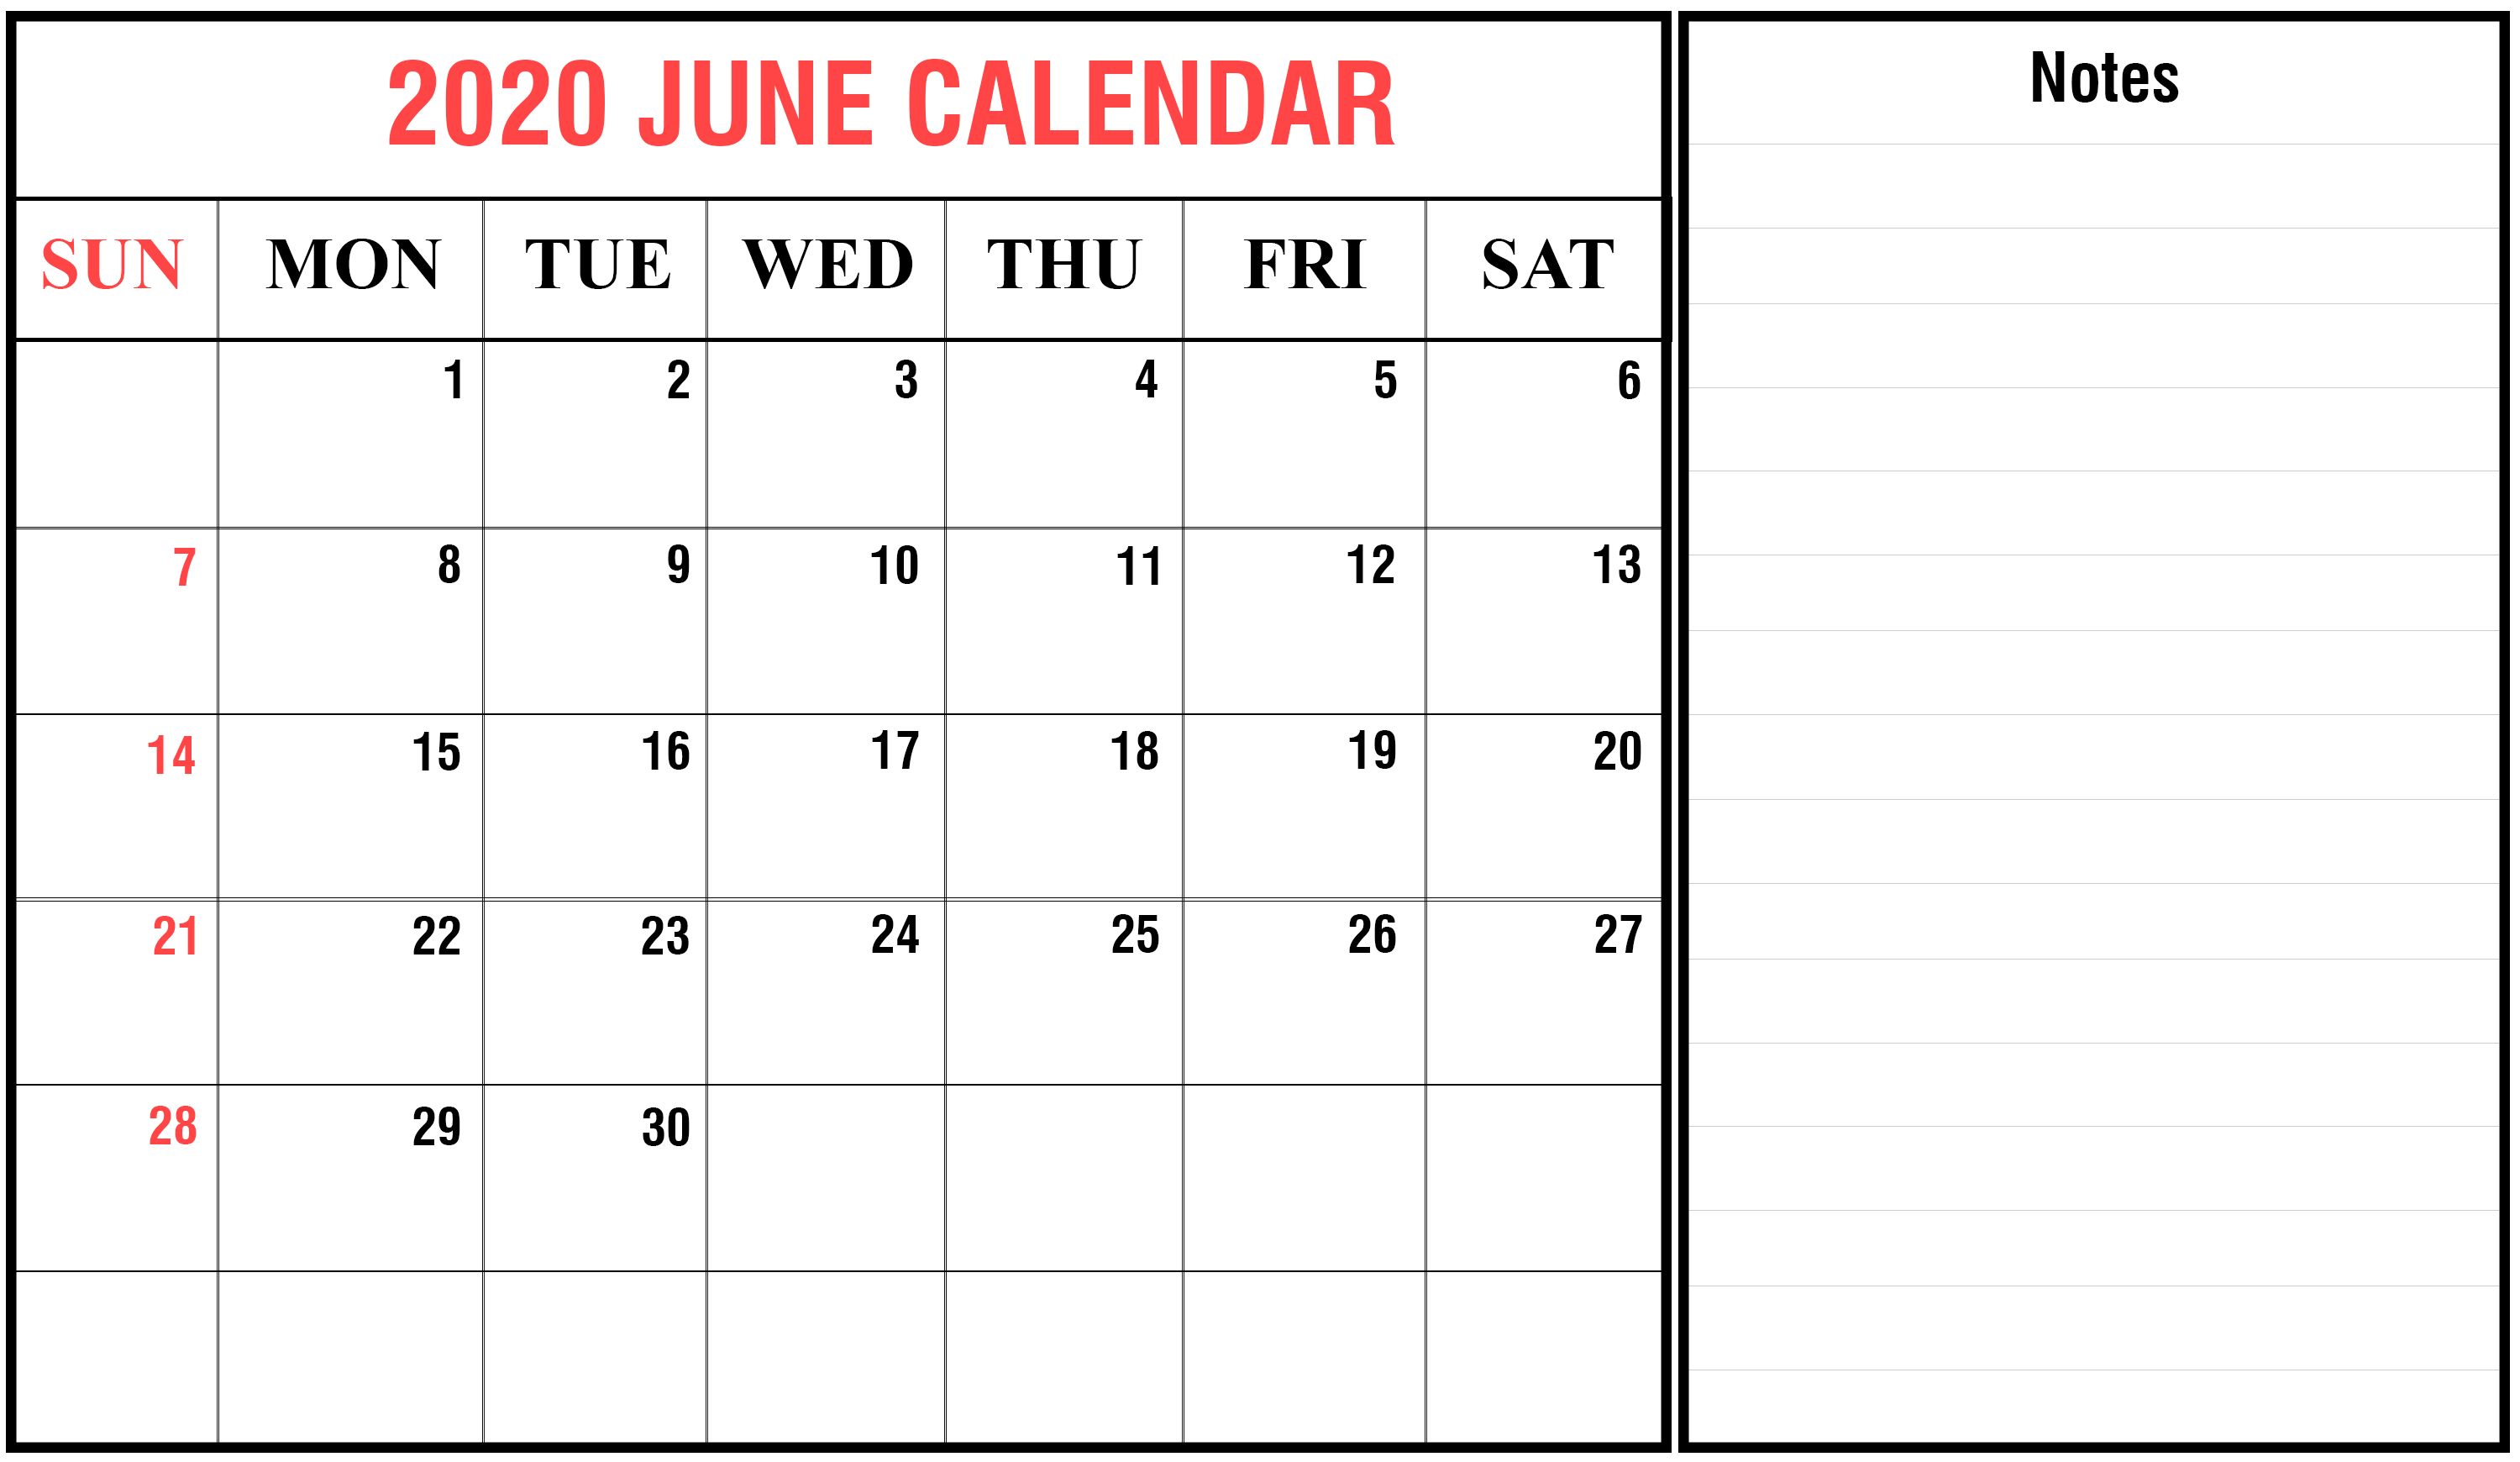 2020 June Calendar Template with Notes